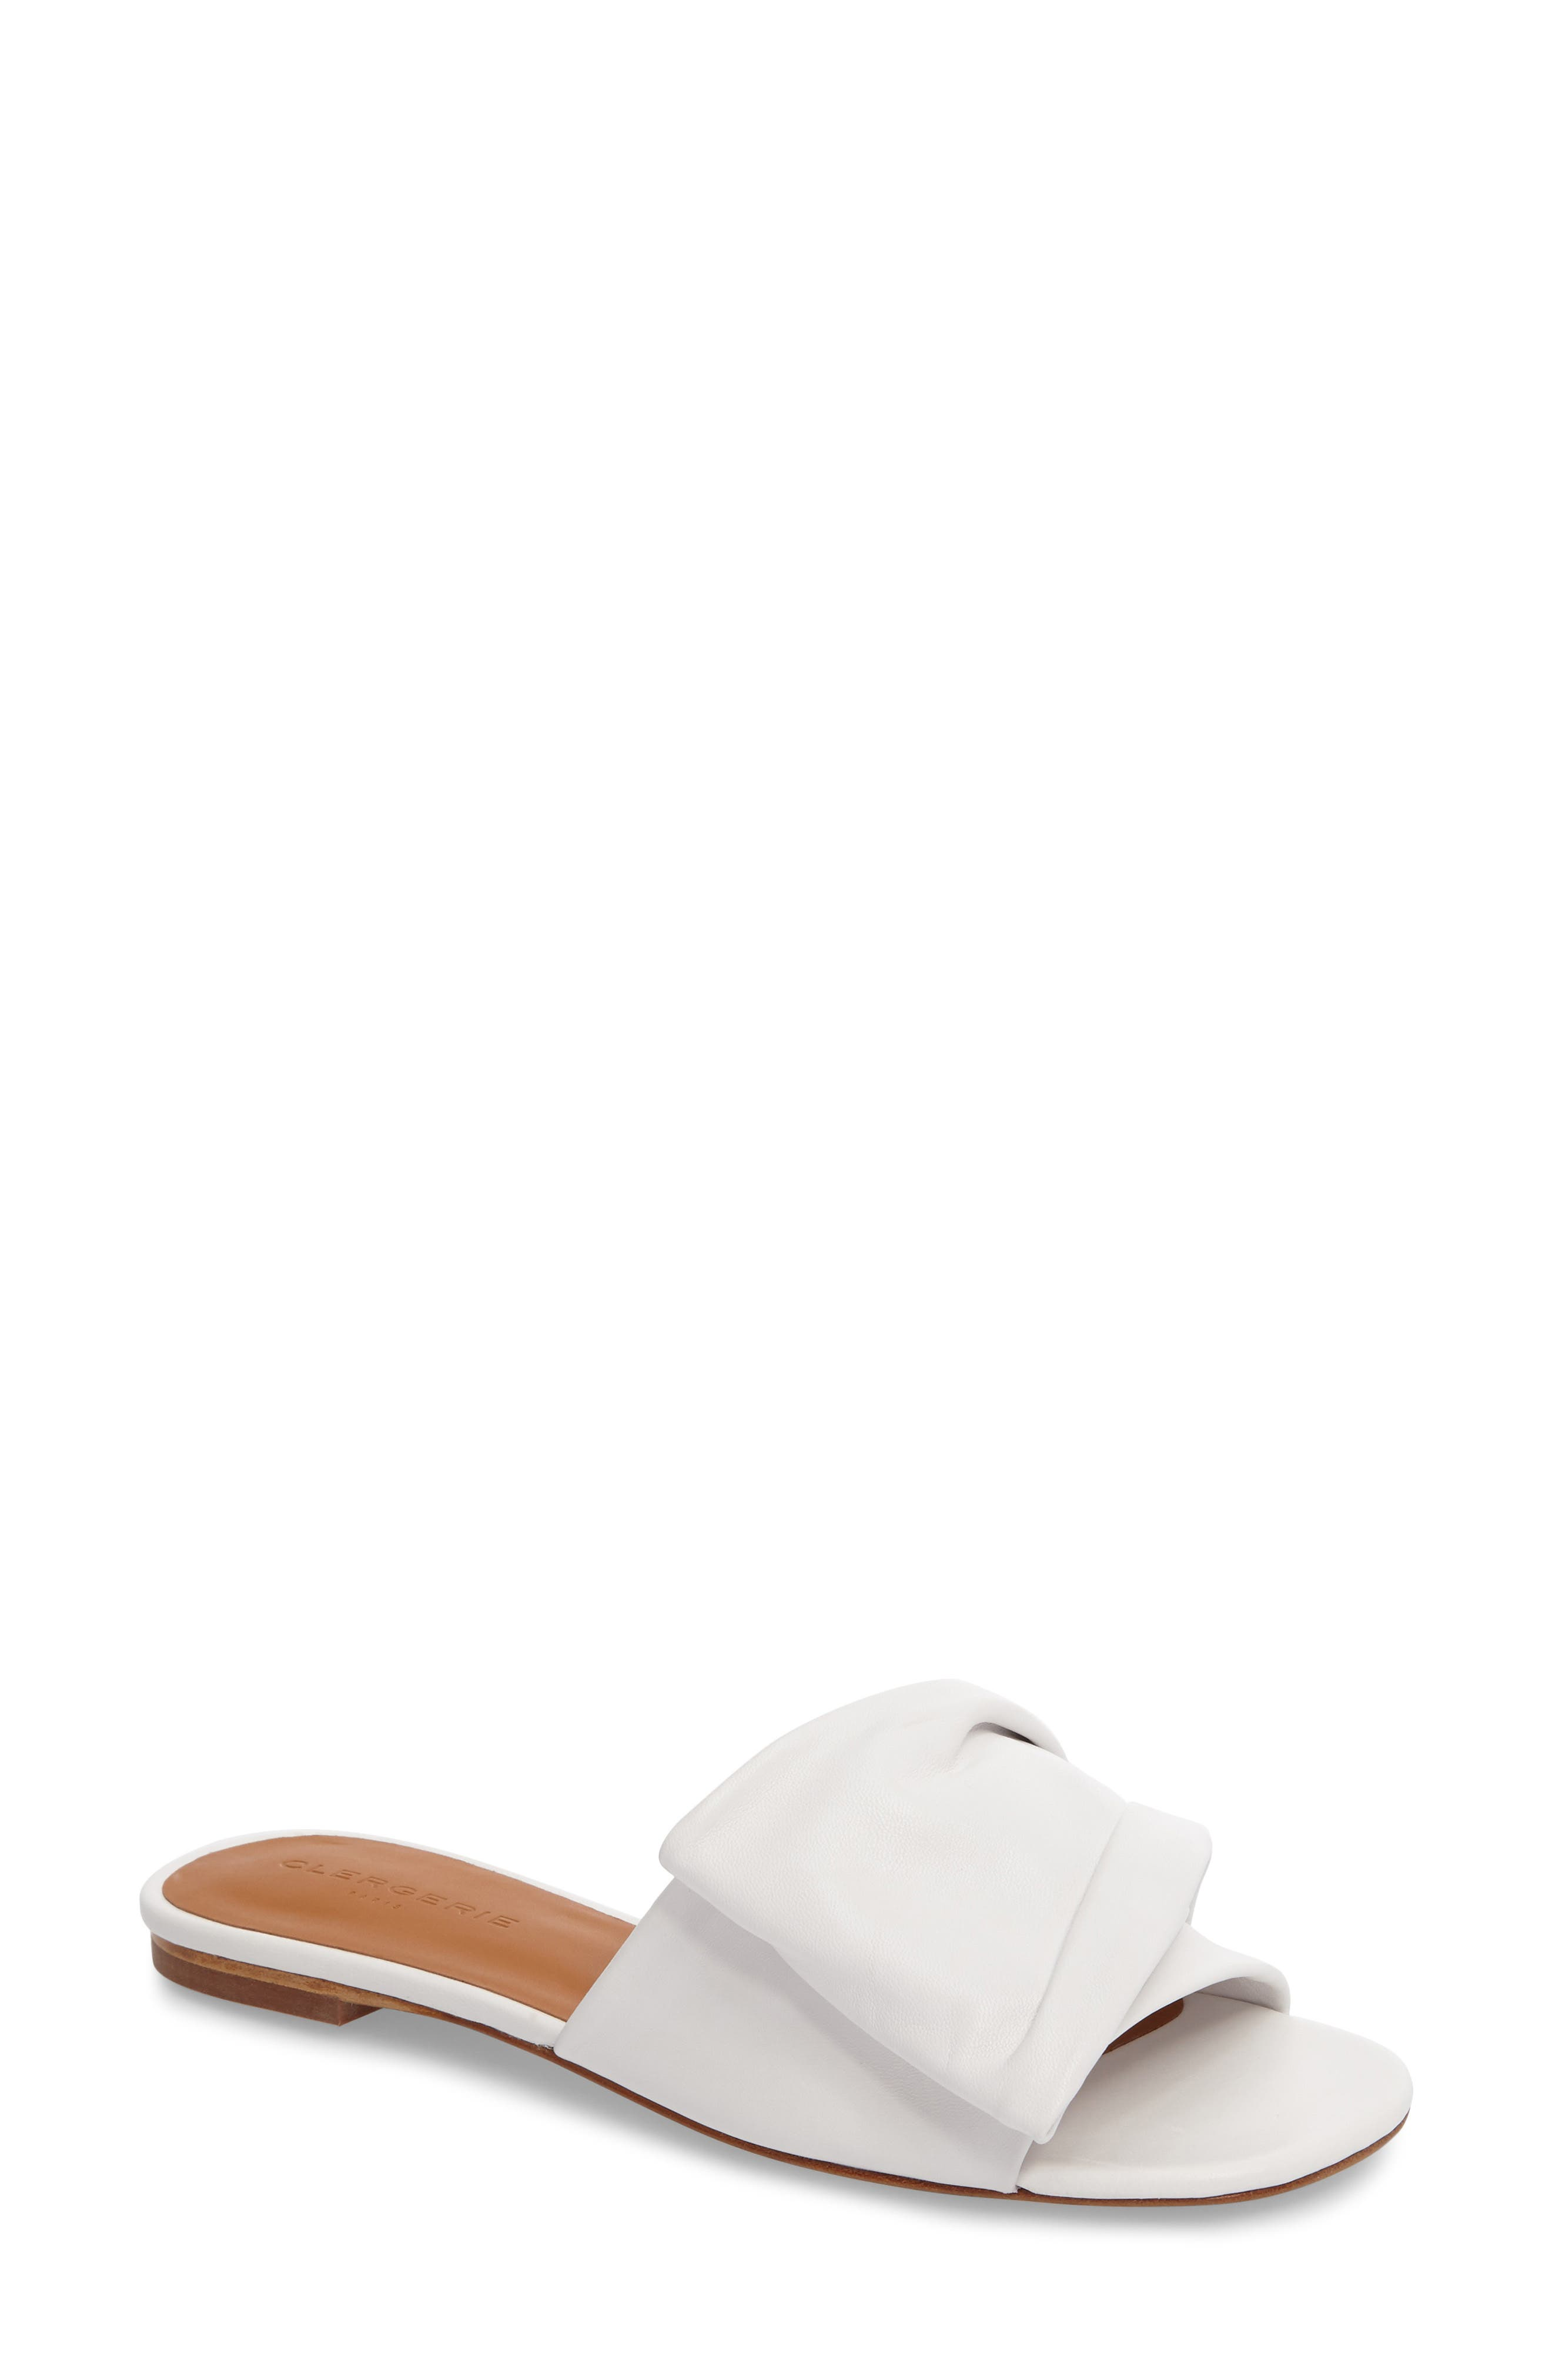 Robert Clergerie Igad Slide Sandal (Women)